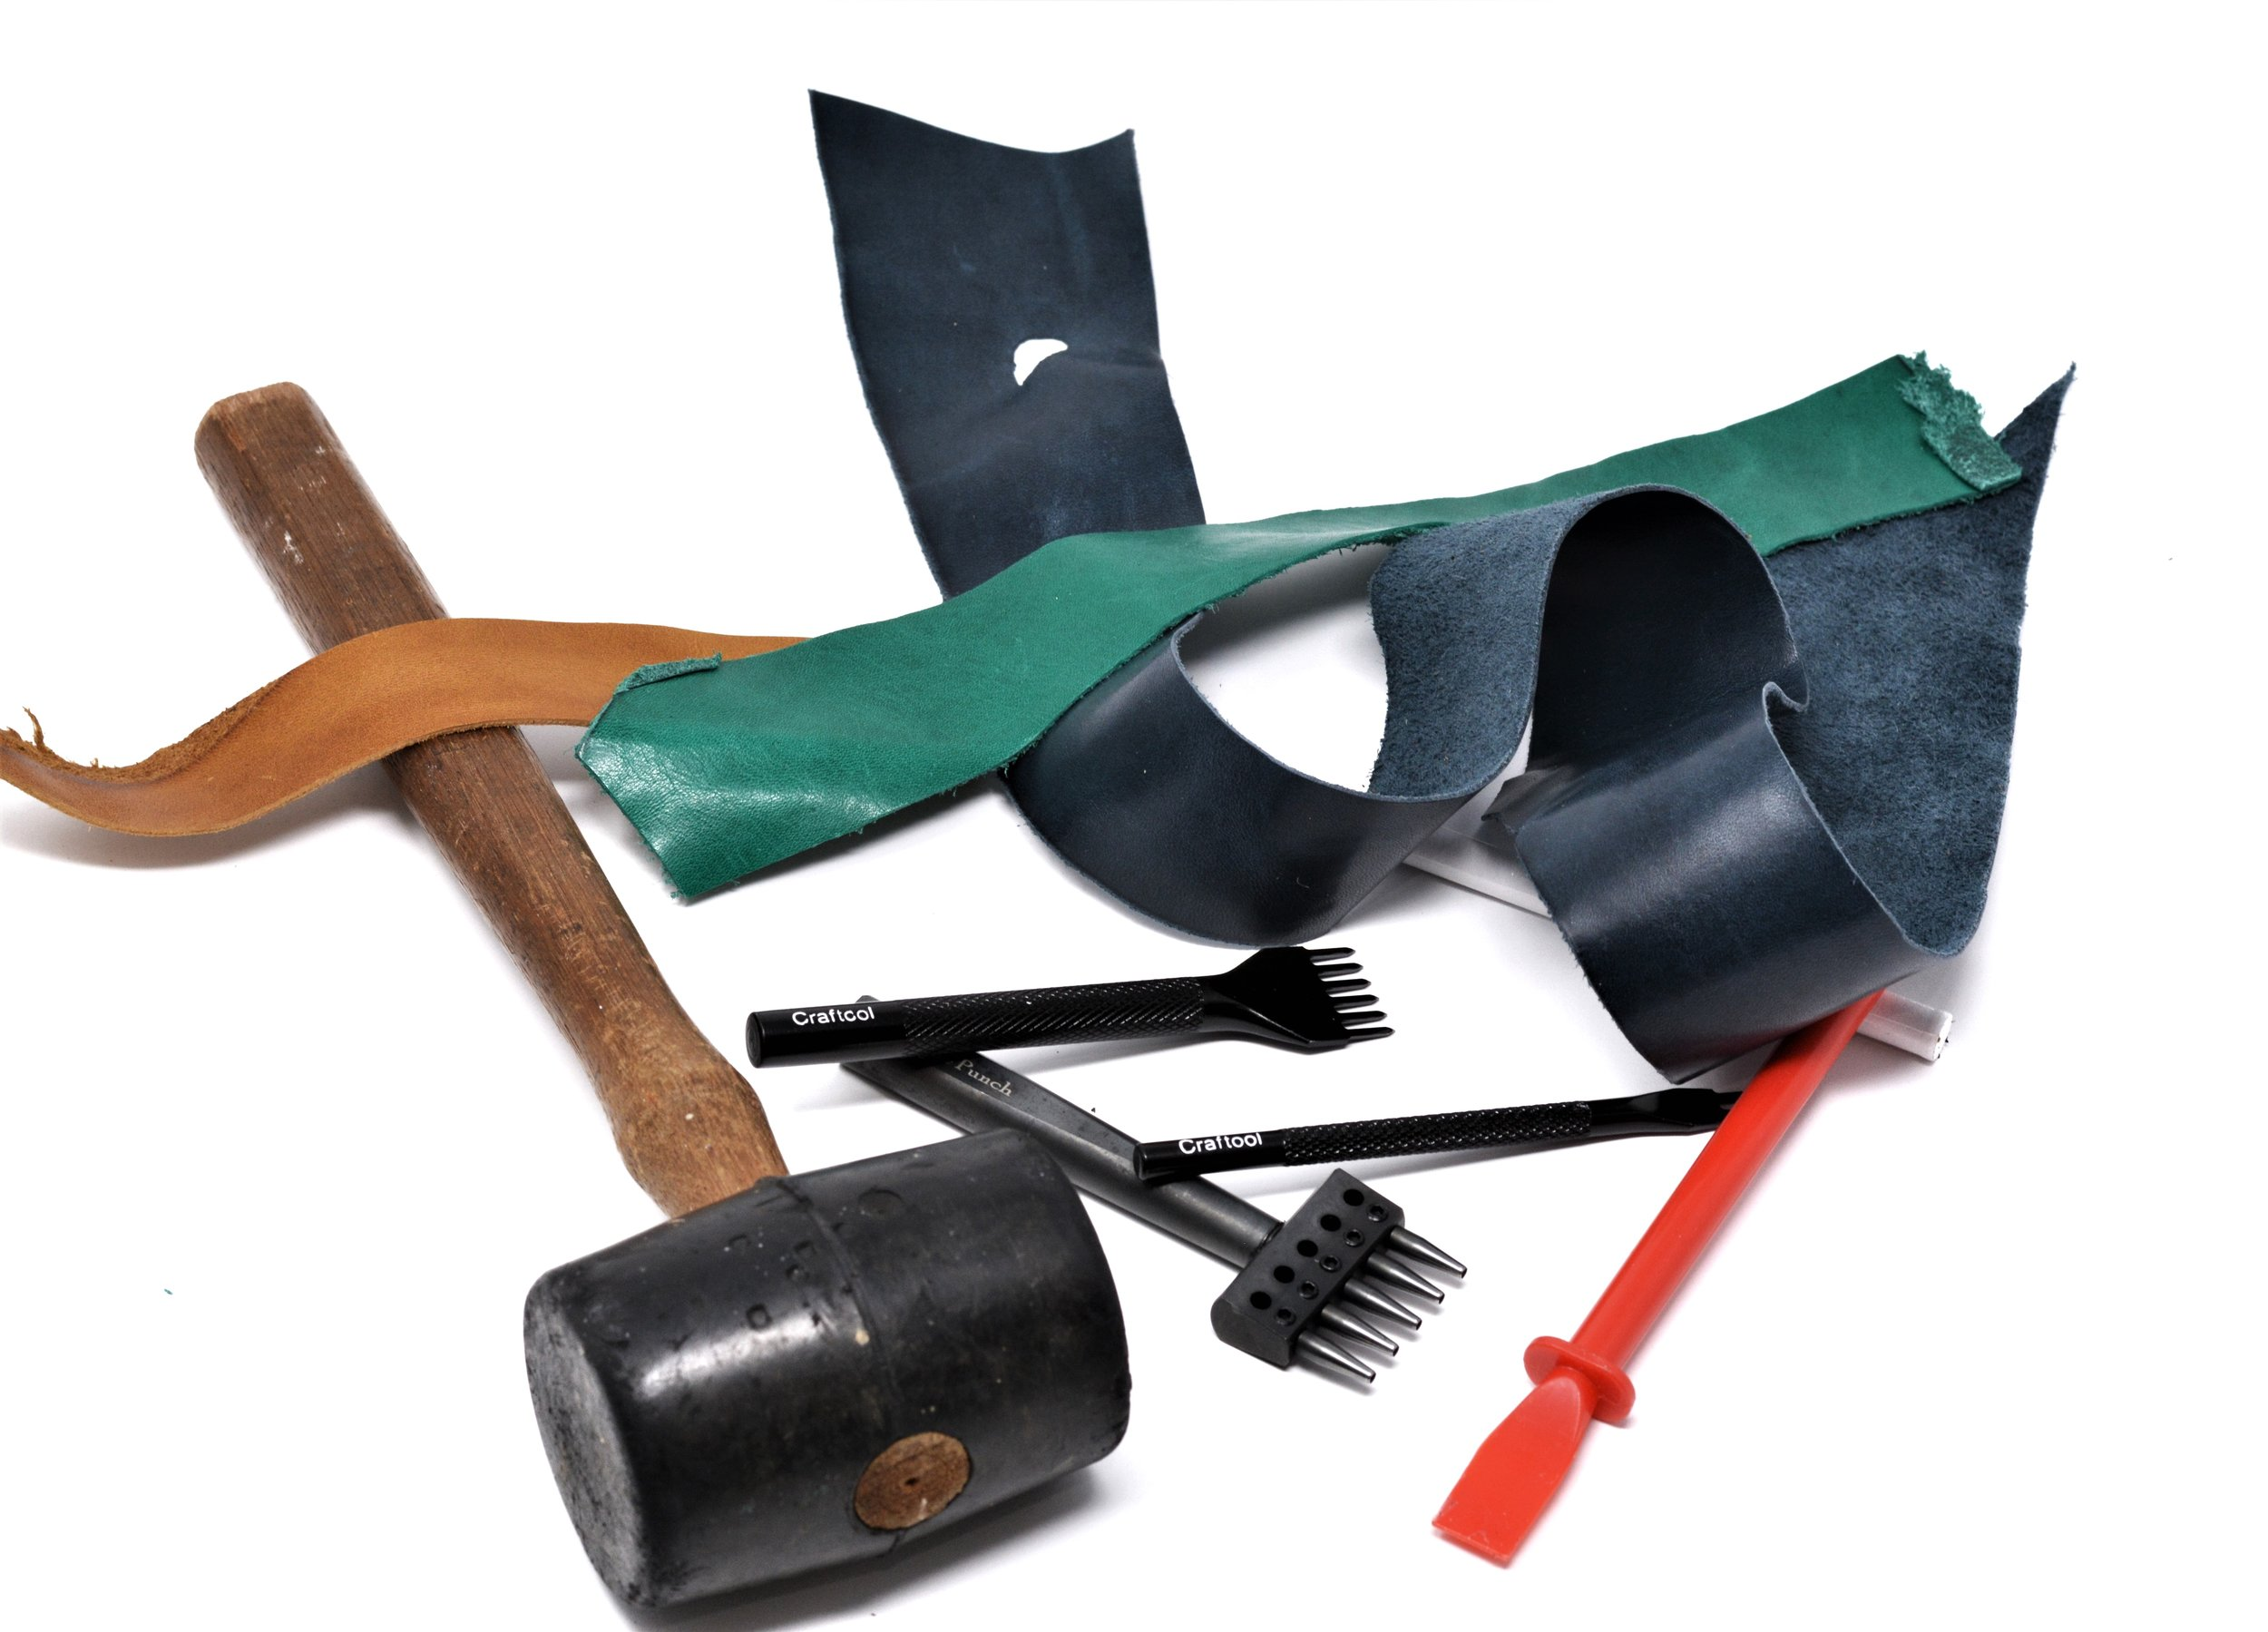 Leather Craft tools for watch strap making